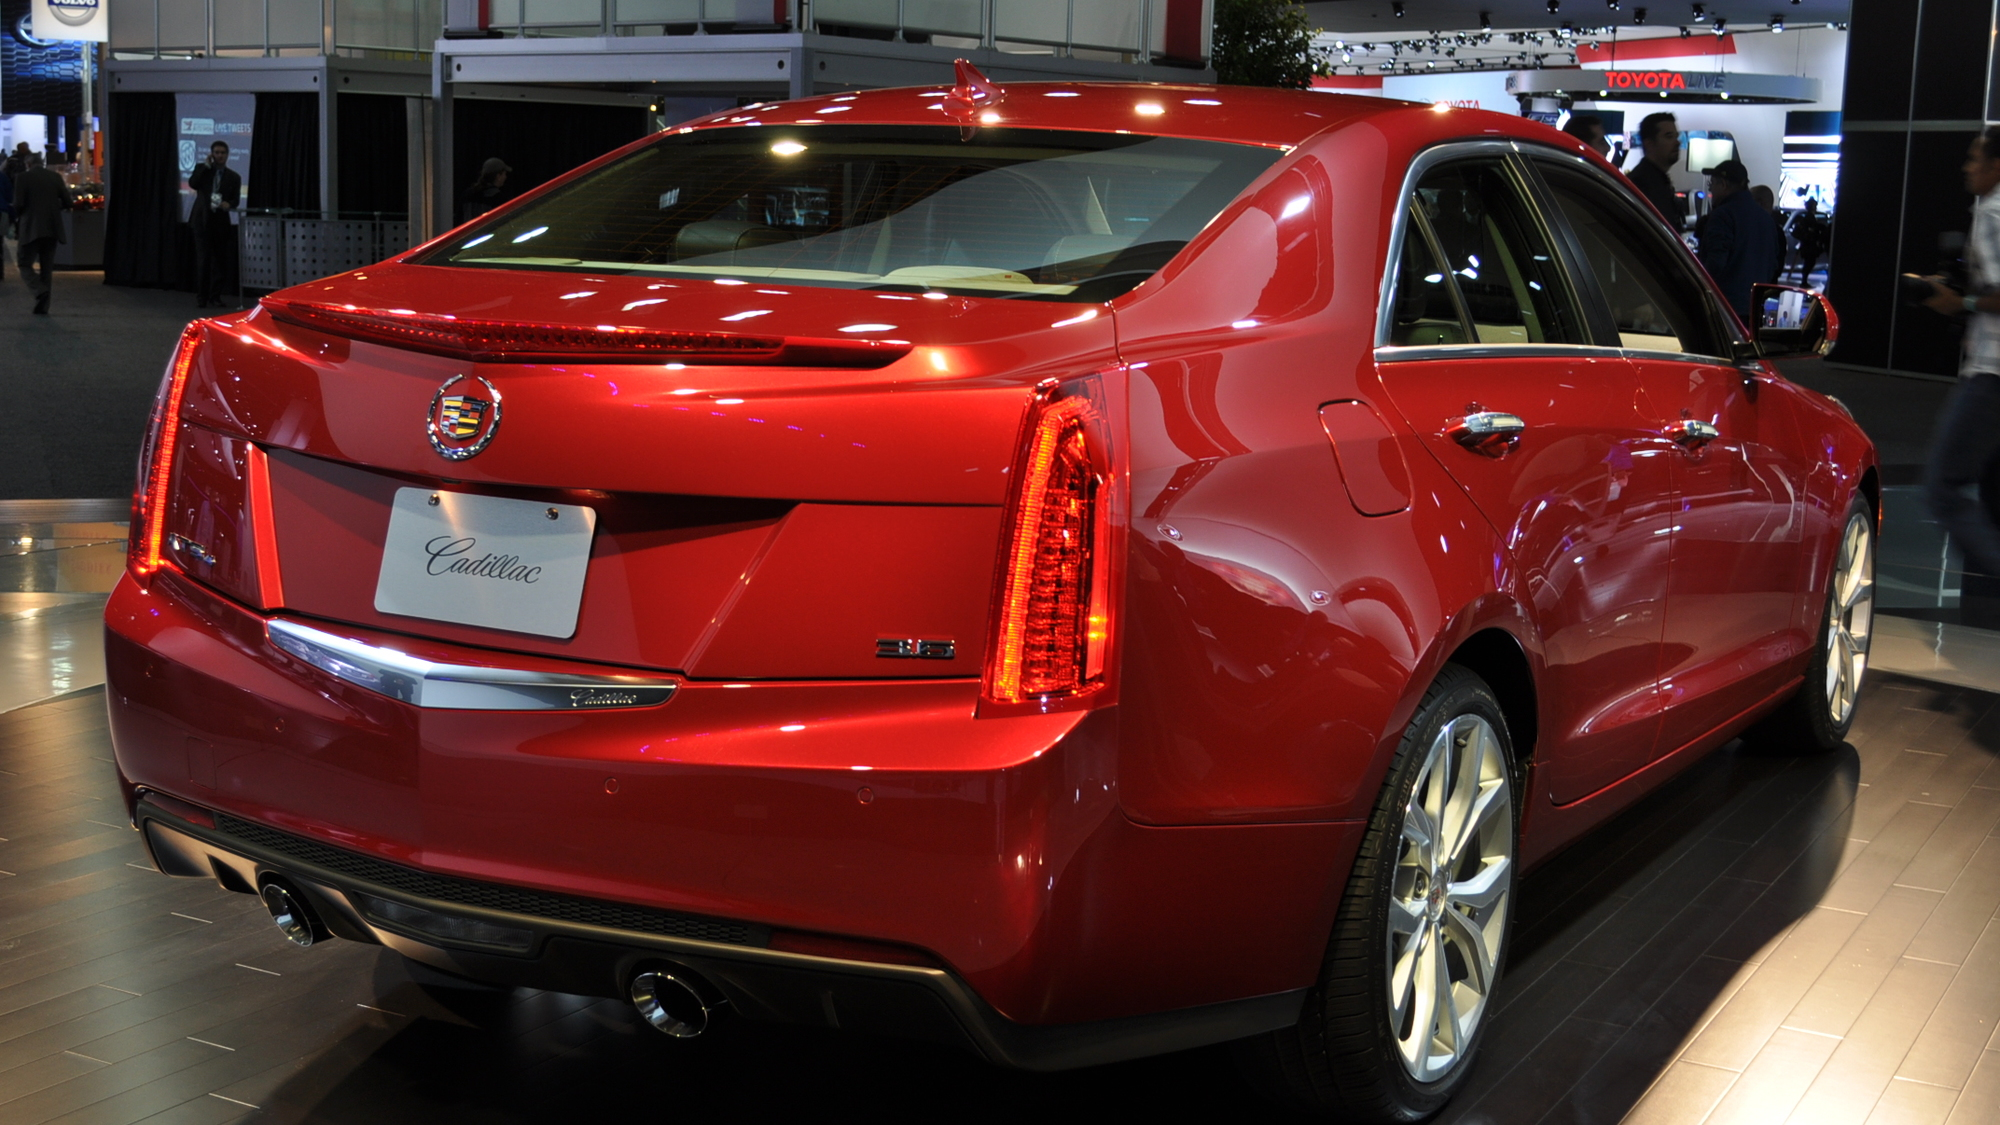 2013 Cadillac ATS: Why It's Lighter Than The BMW 3-Series